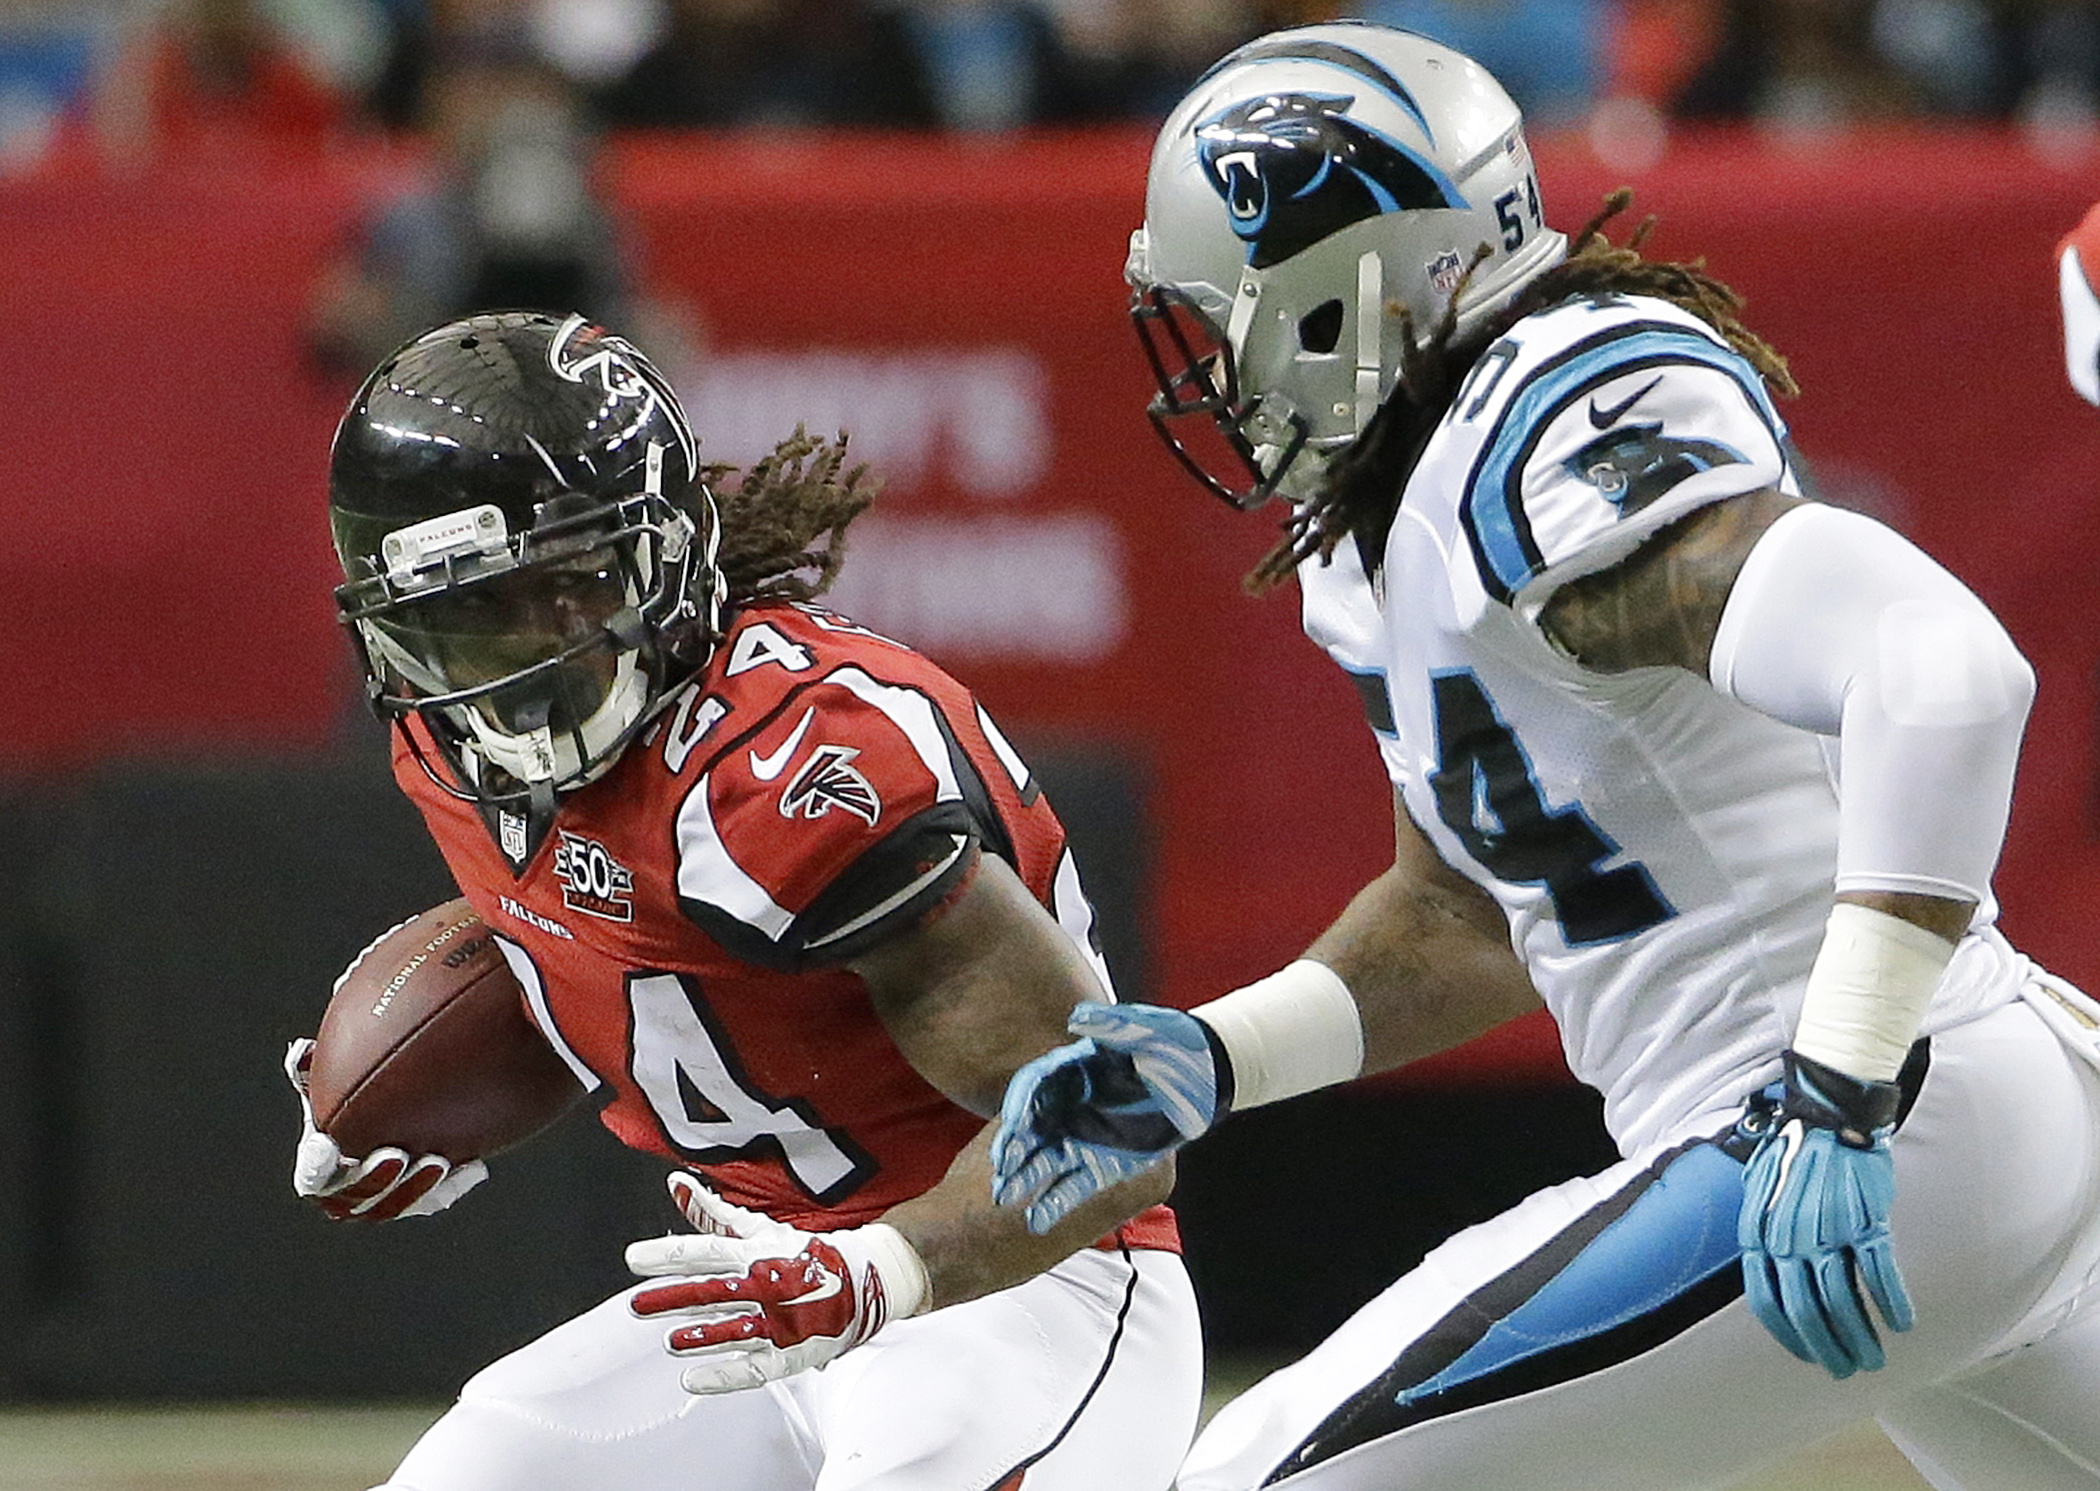 FILE - In this Sunday, Dec. 27, 2015 file photo, Atlanta Falcons running back Devonta Freeman (24) runs against Carolina Panthers outside linebacker Shaq Green-Thompson (54) during the first half of an NFL football game in Atlanta. Atlanta Falcons running